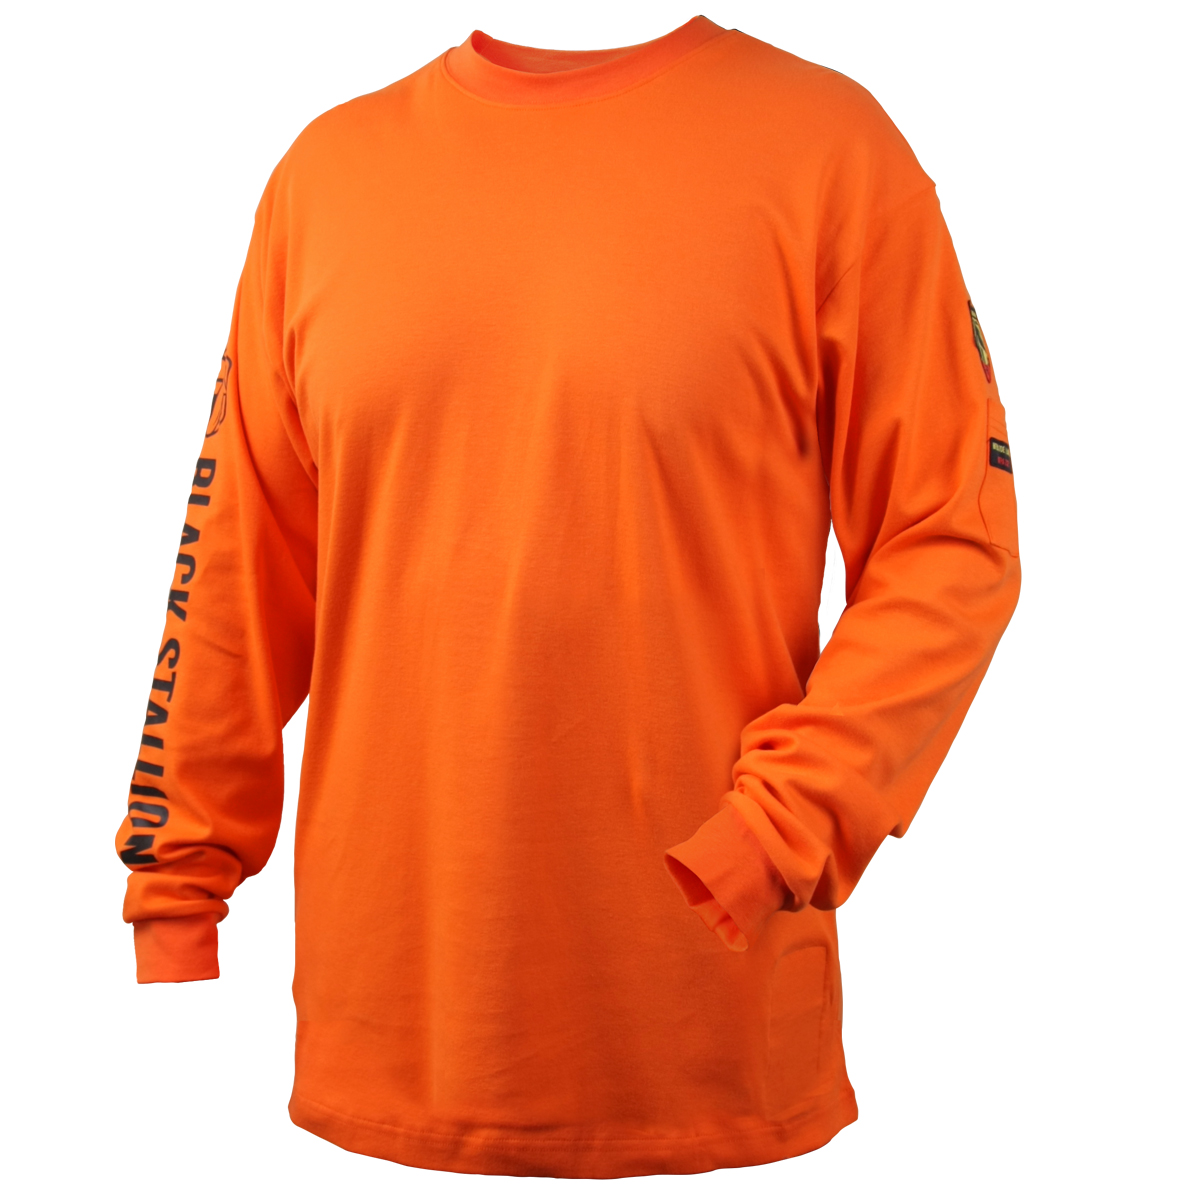 7oz. FR Cotton Knit Long-Sleeve T-Shirt #TF2510-OR